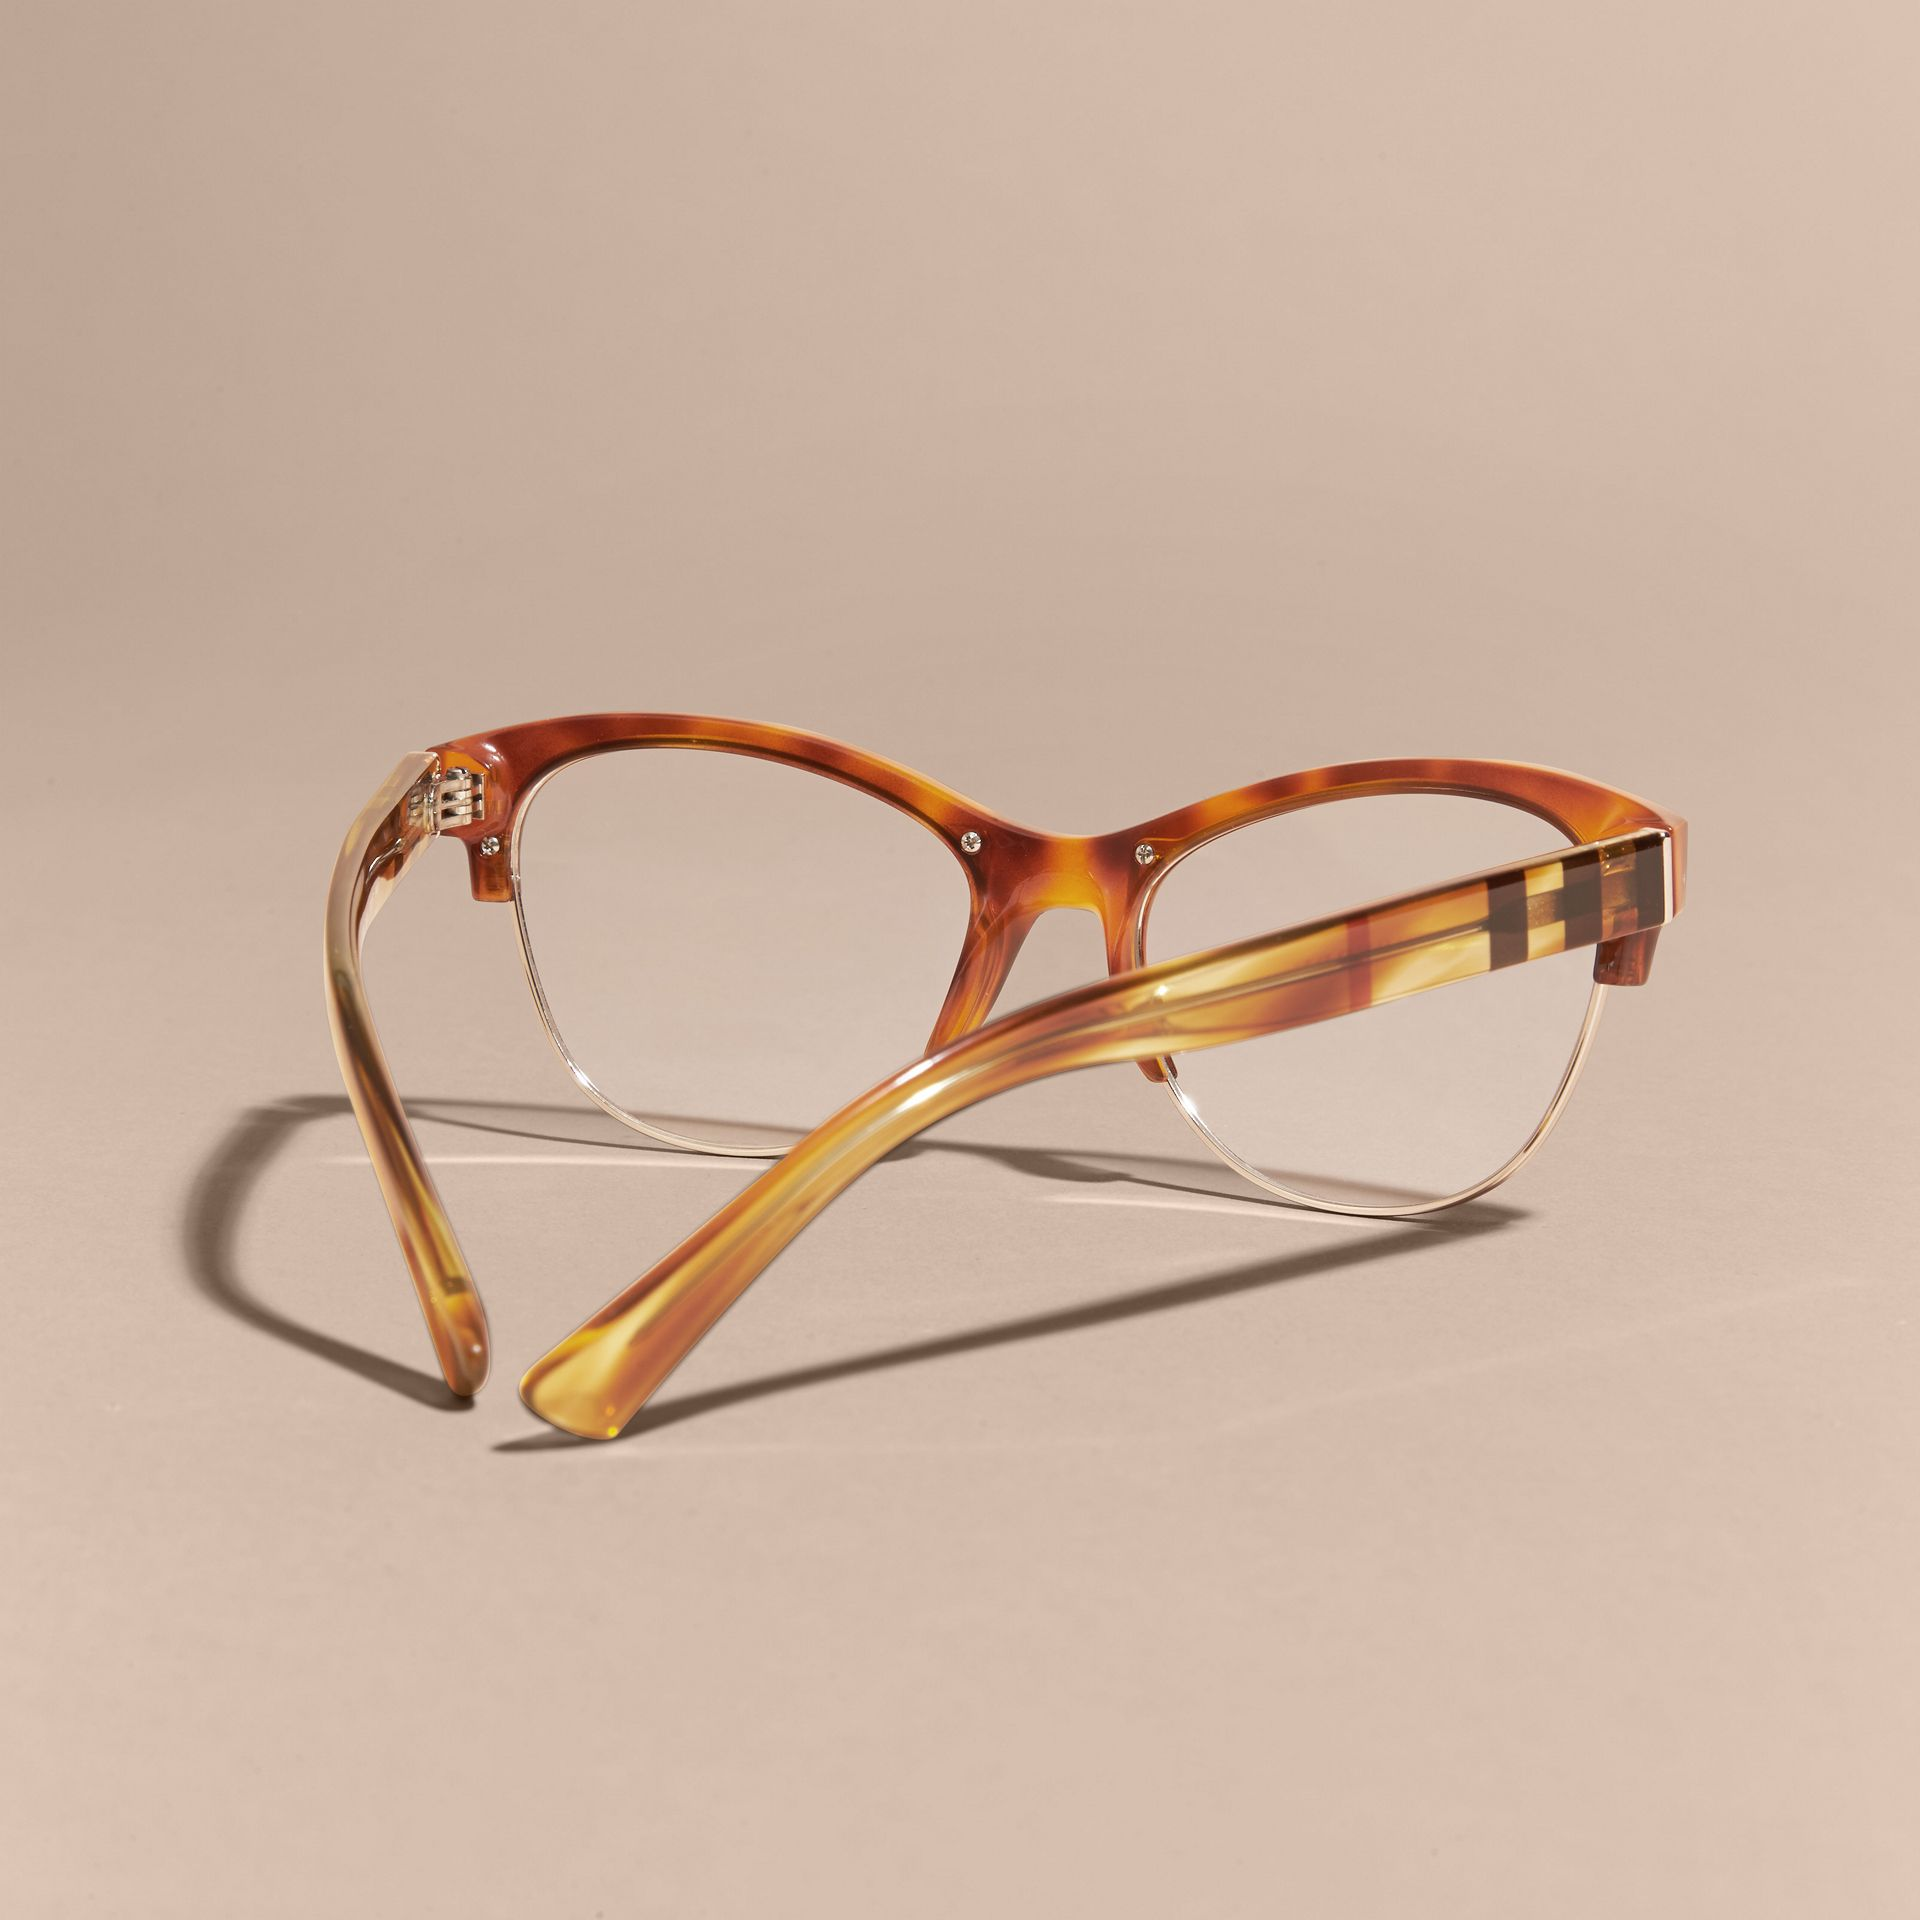 Half-rimmed Cat-eye Optical Frames in Light Russet Brown - gallery image 4